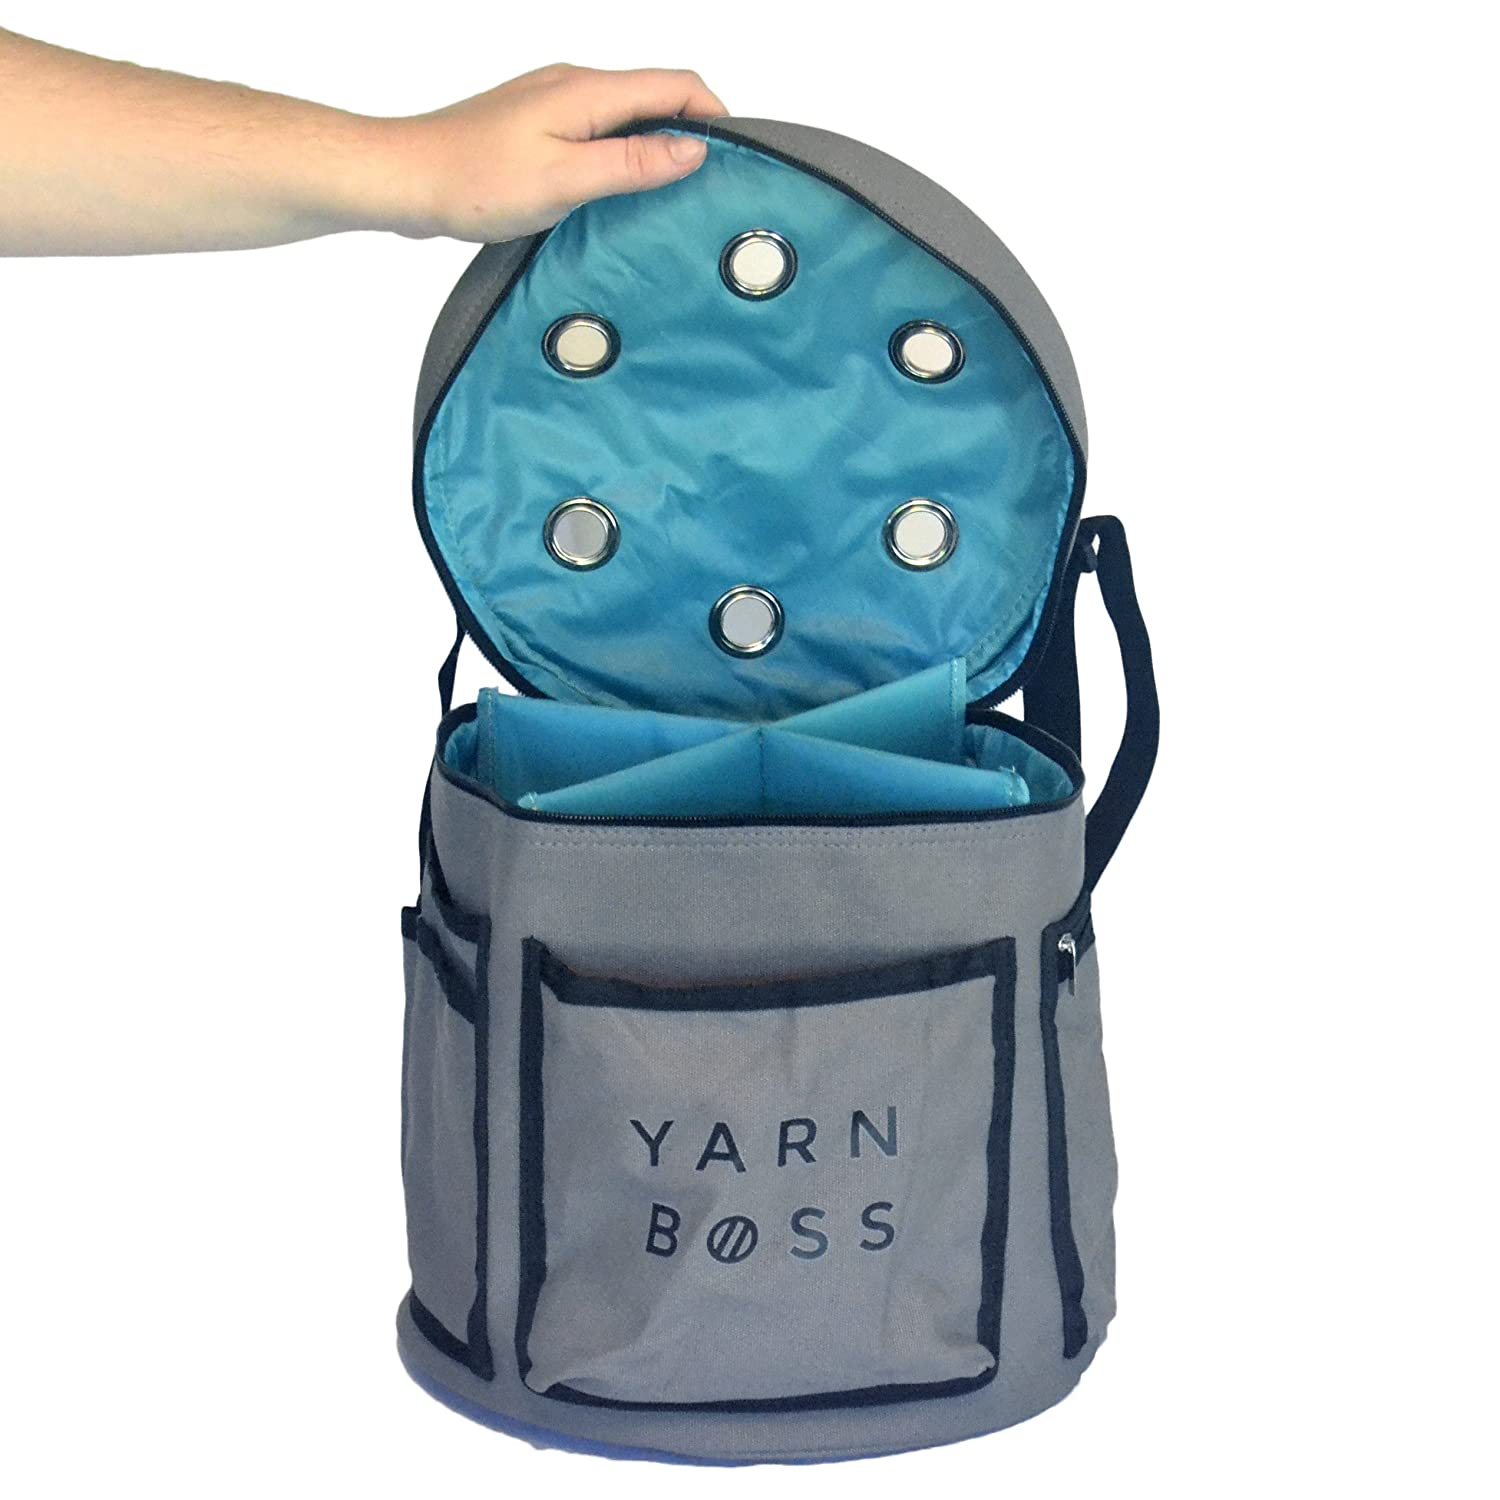 Yarn Boss Yarn Bag, Travel With Yarn and all Notions - Yarn Storage To Organize Multiple Projects and Keep Your Yarn Safe and Clean - Wide Grommets Stop Tangling for Best Crochet Bag or Knitting Bag Ltd. LX-HP-0908D FBA_LX-HP-0908D